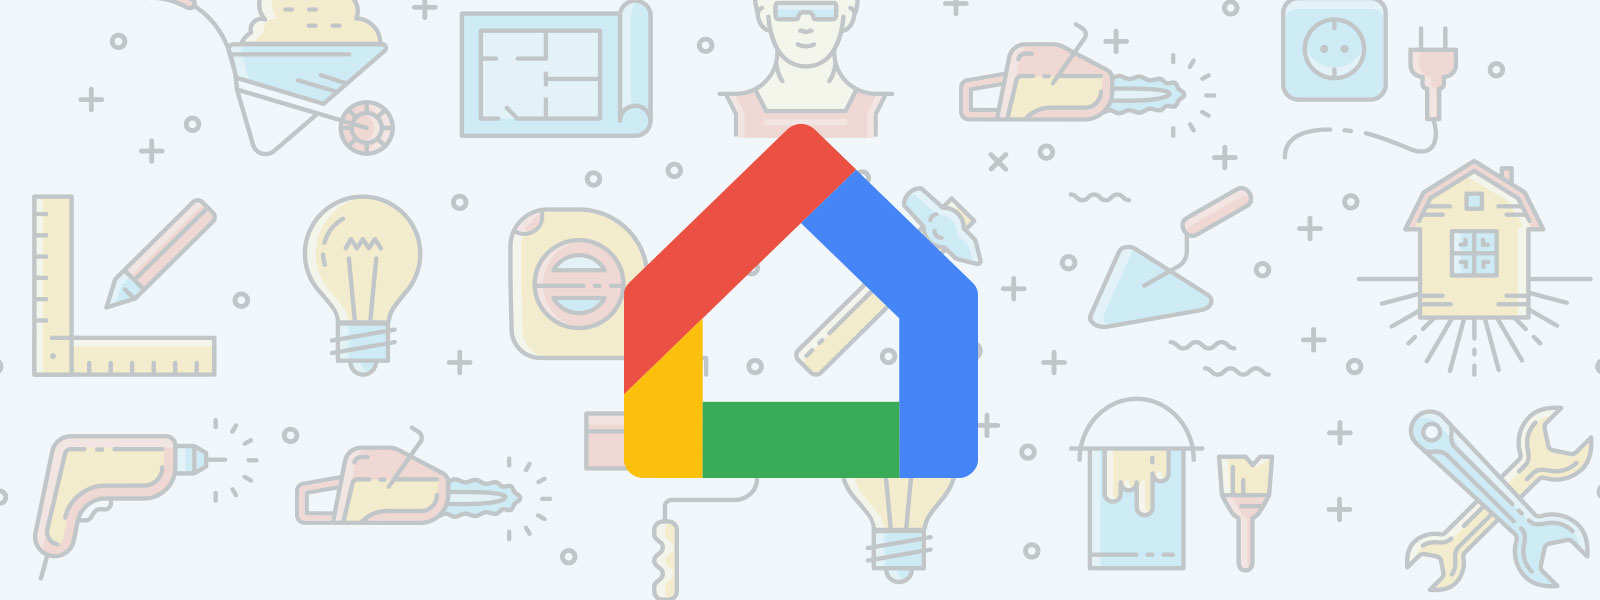 google home search logo background